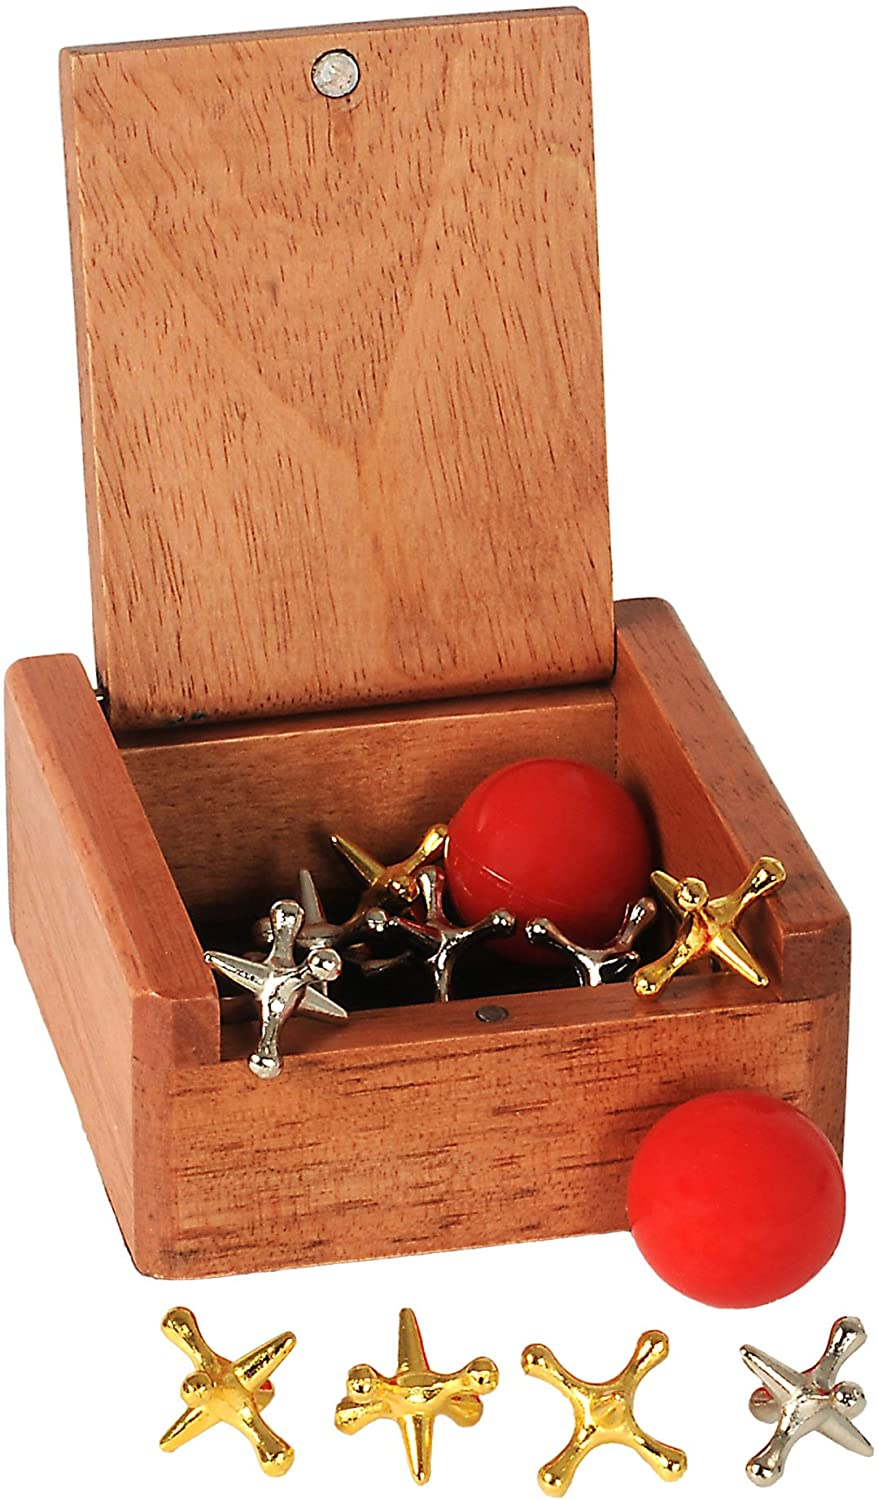 WE 2021 Games Super-cheap Old-Fashioned Metal Jacks a Box in Wooden